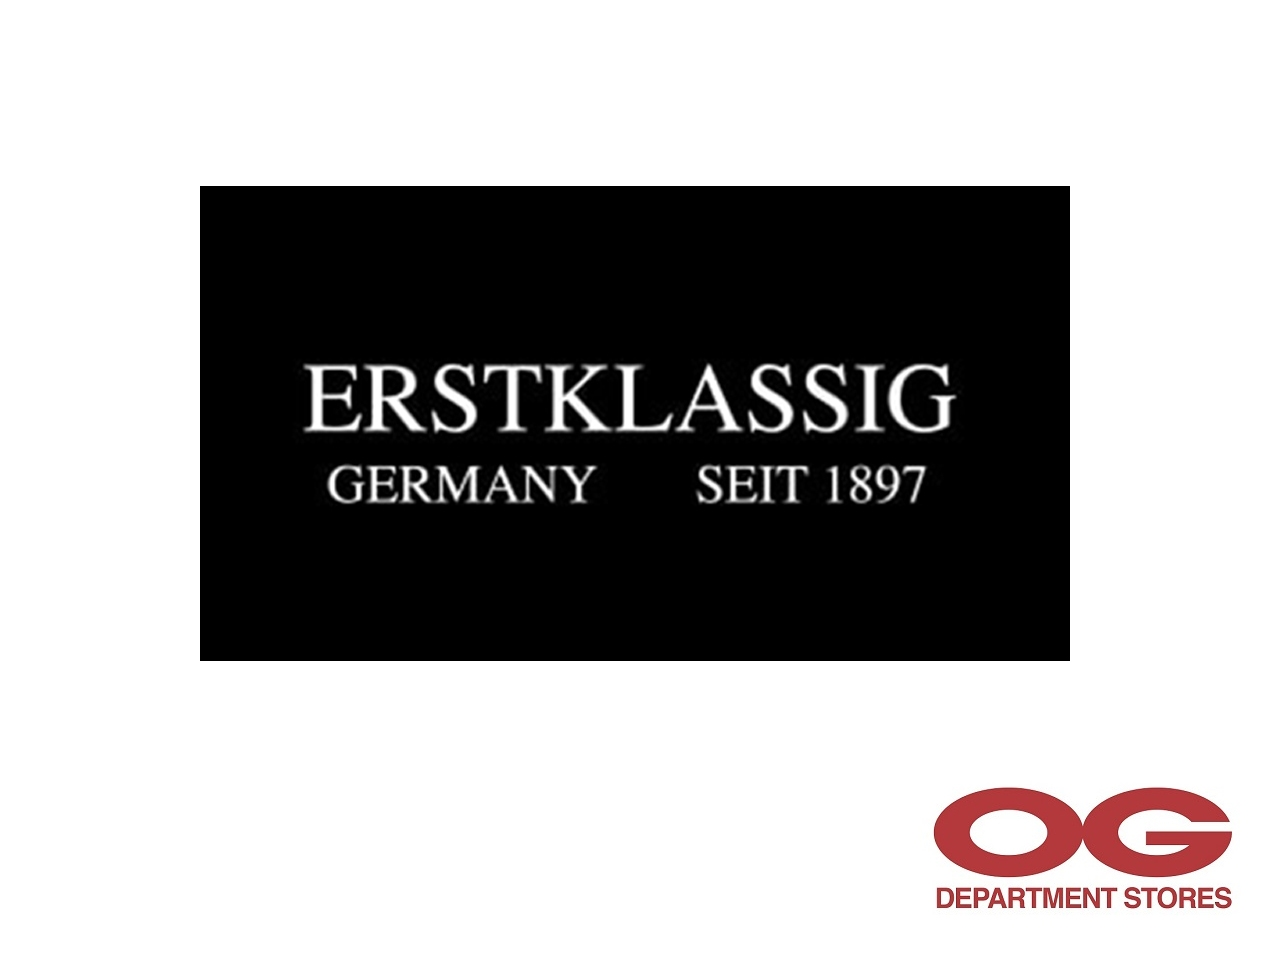 ERSTKLASSIG All Regular-Priced Men's Shoes @ 30% off